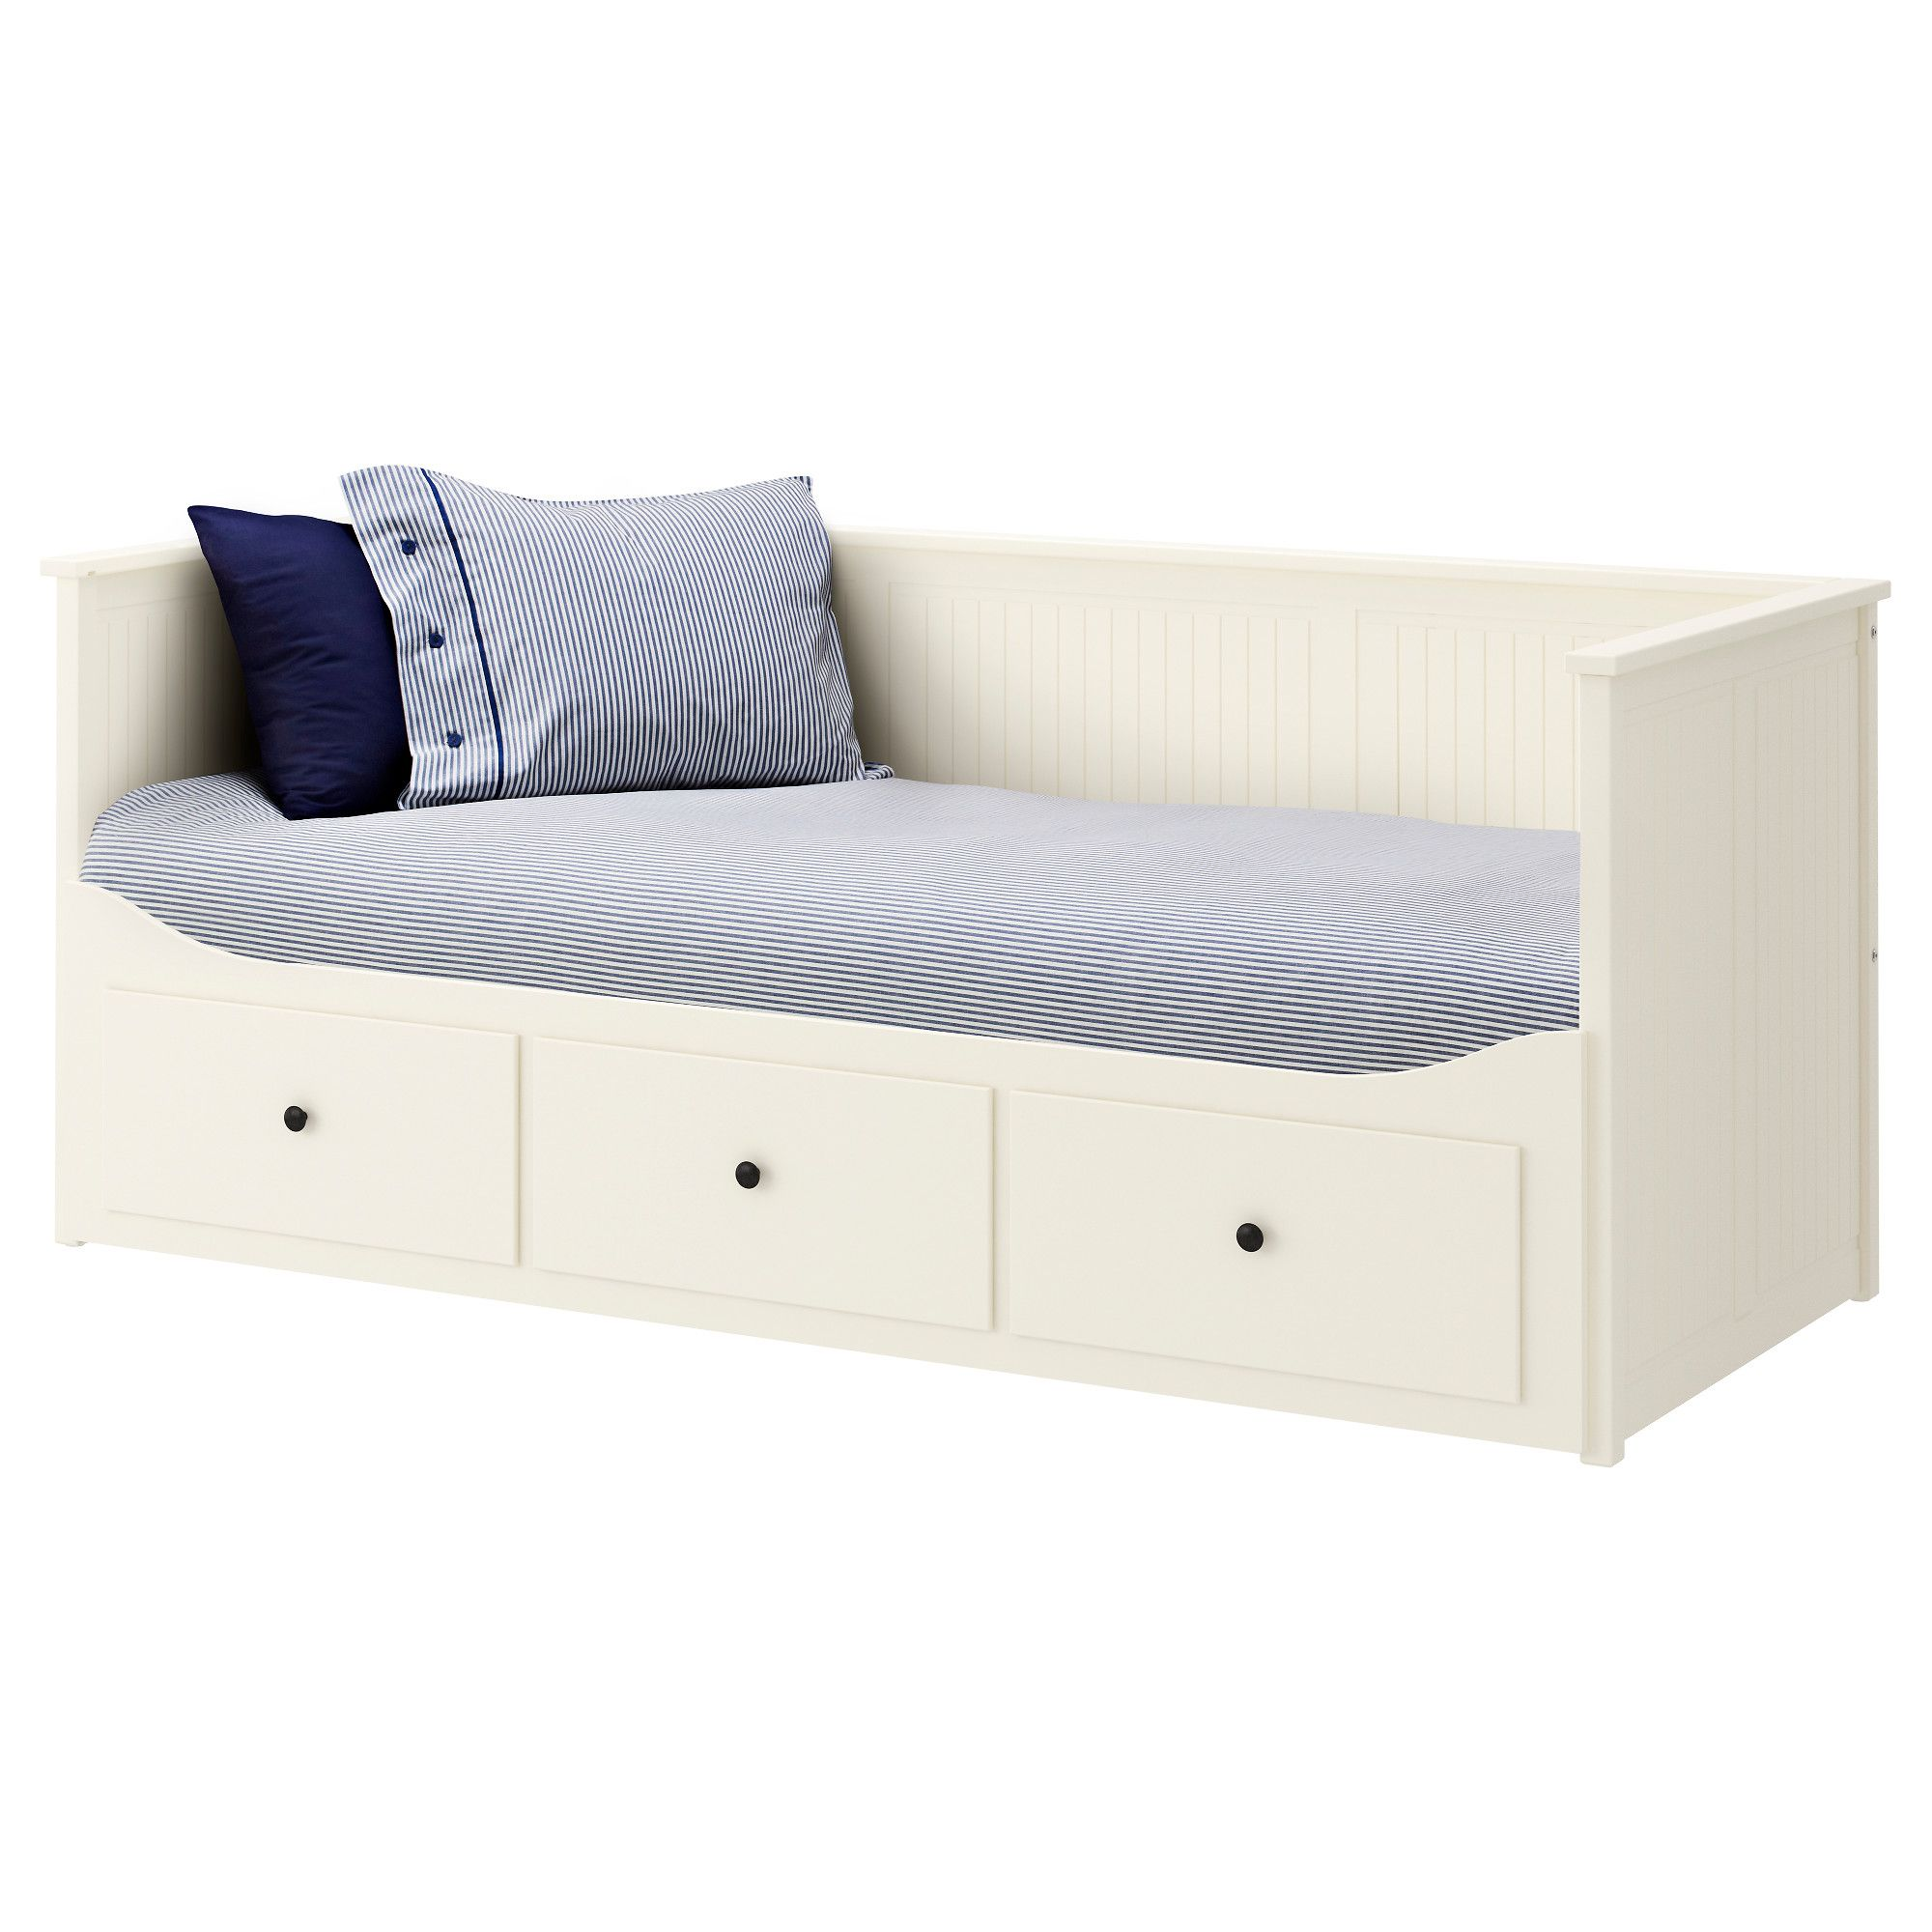 IKEA HEMNES Daybed frame with 3 drawers Four functions